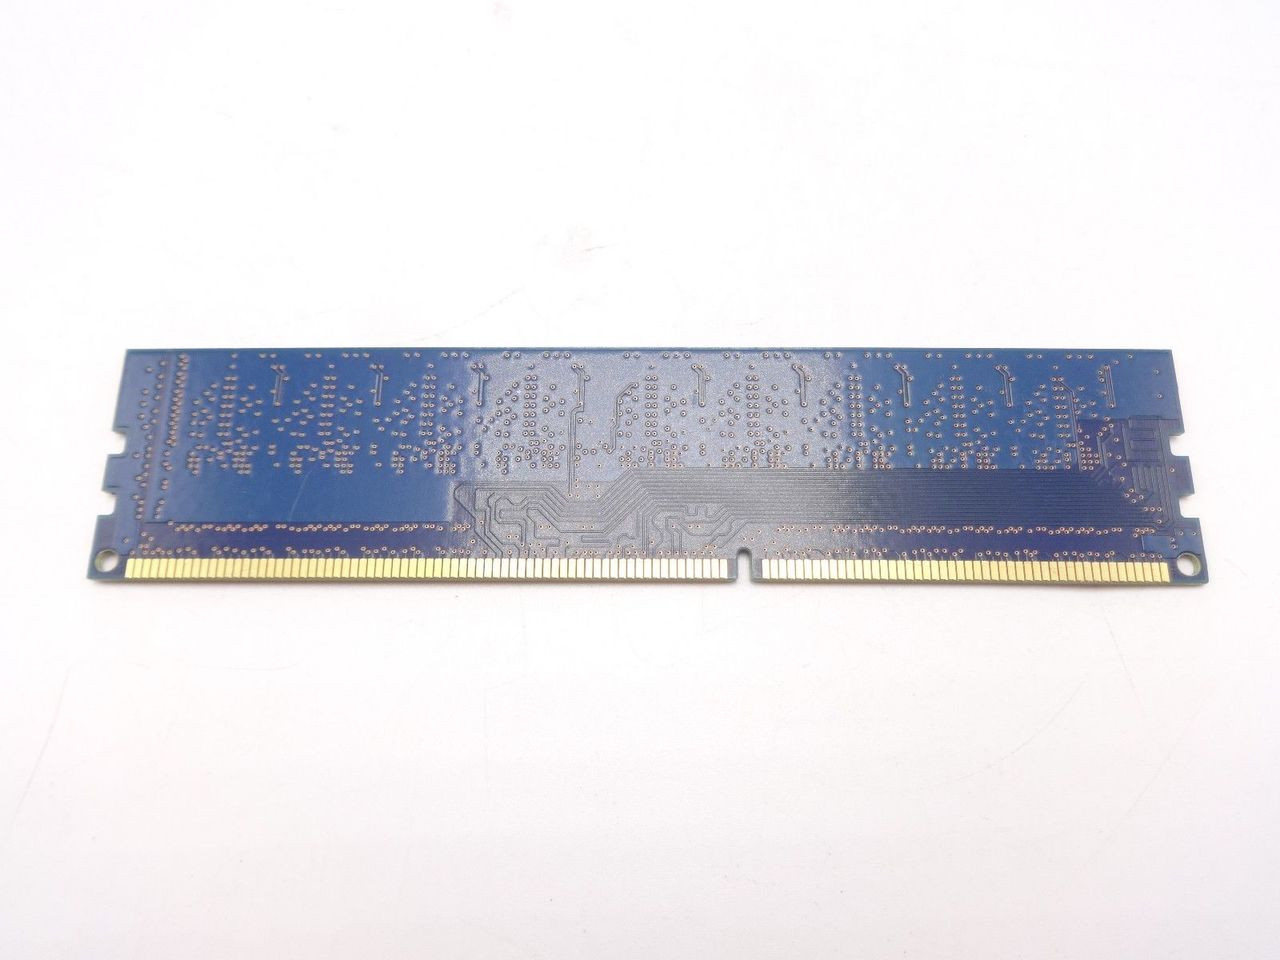 Hynix HMT325U7CFR8A-H9 2GB PC3L 10600E 1RX8 DIMM DM0KY  ***Server Memory Only***